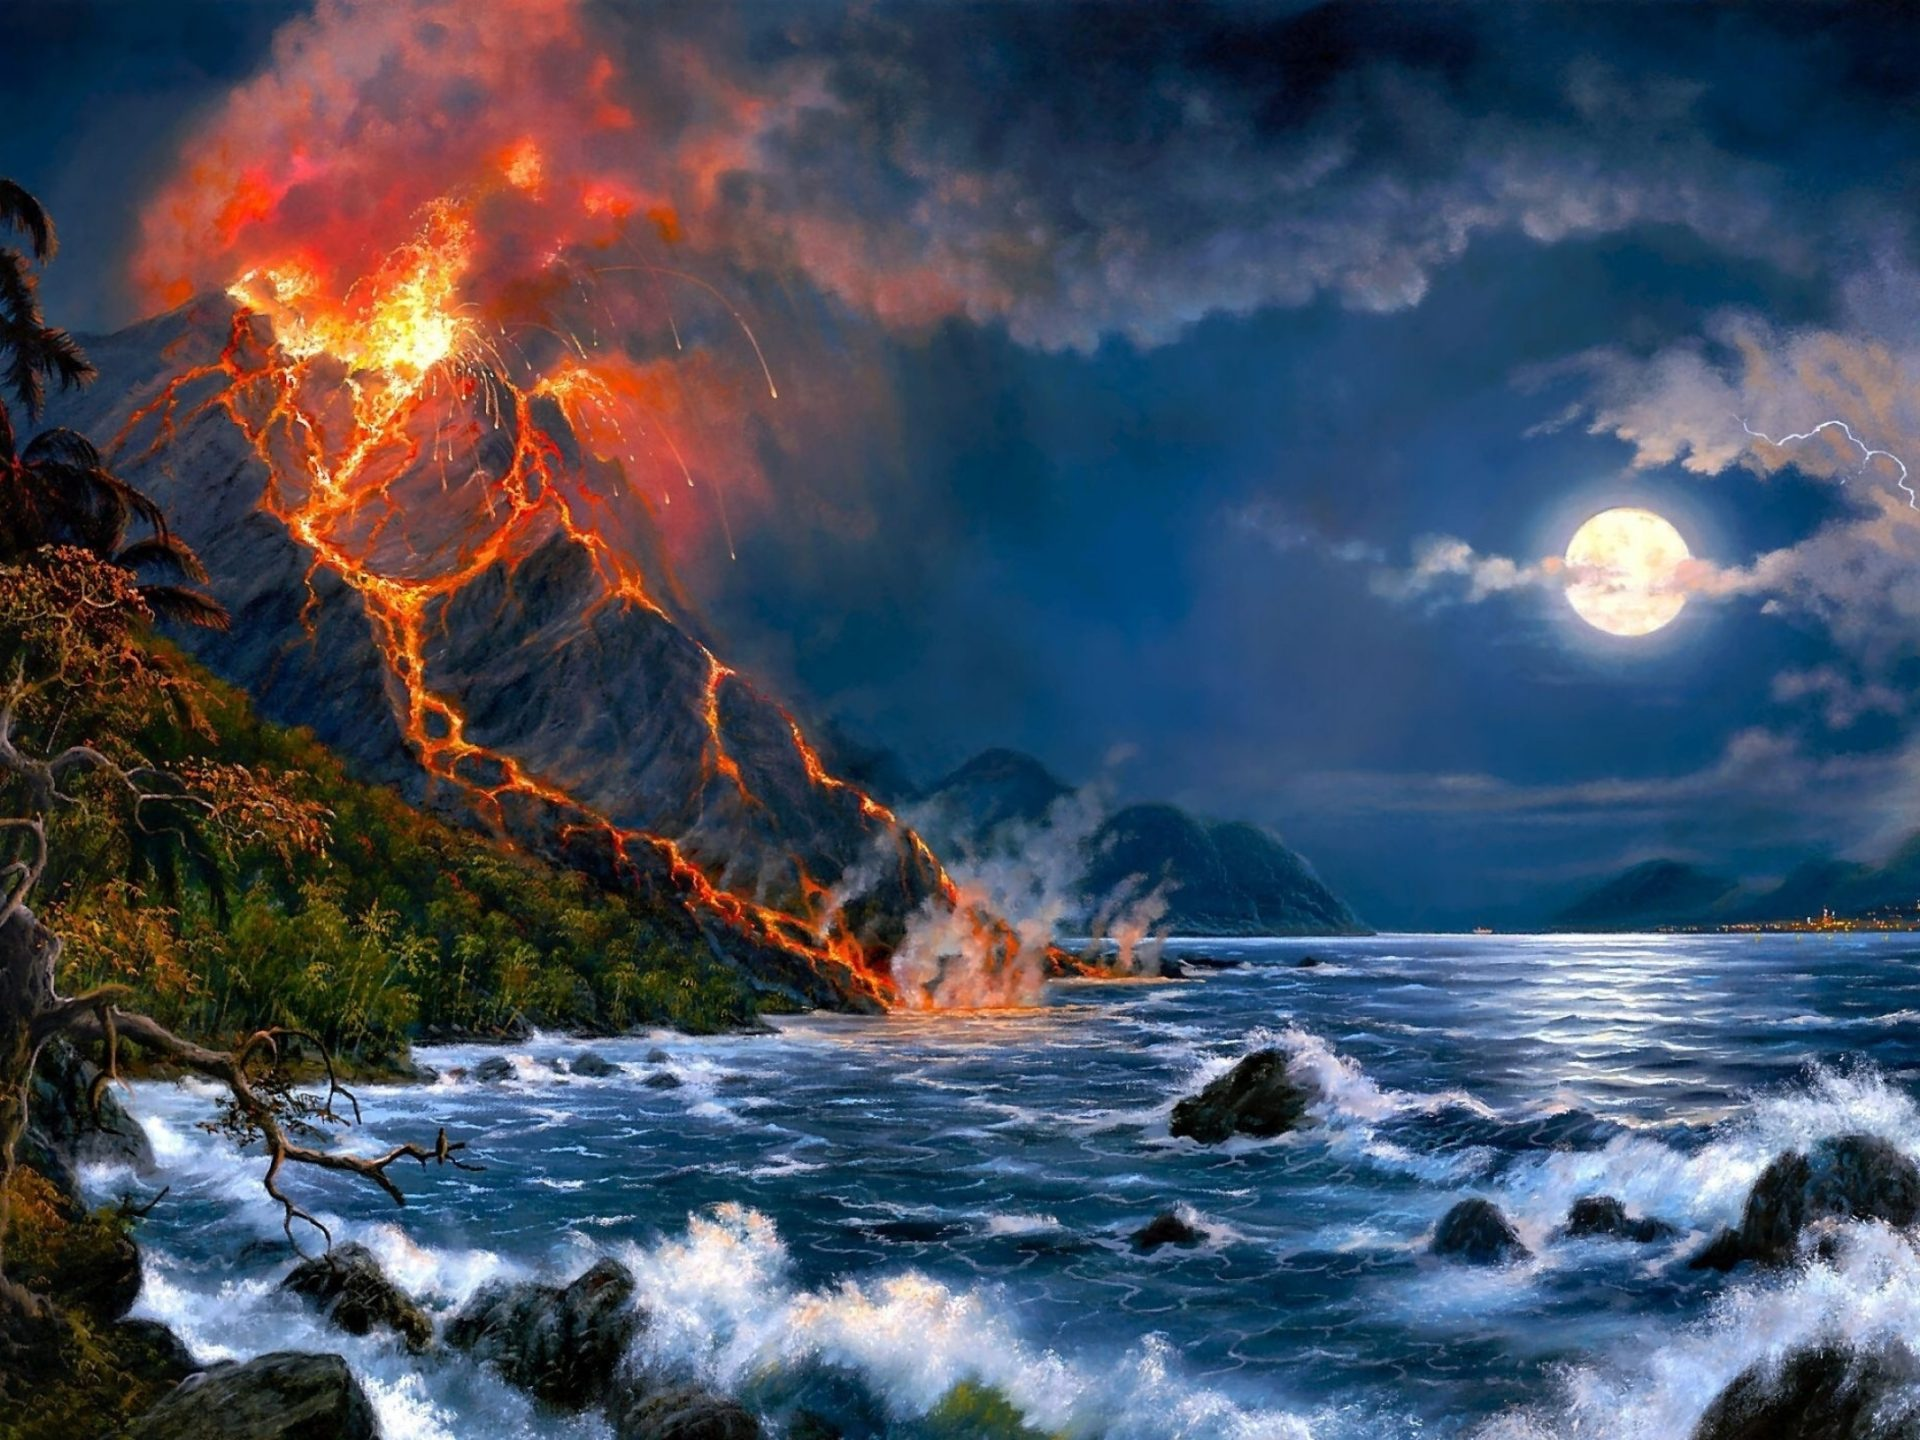 Broken Screen Wallpaper 3d Eruption Of Volcano Sea Full Moon Fantasy Art Hd Wallpaper